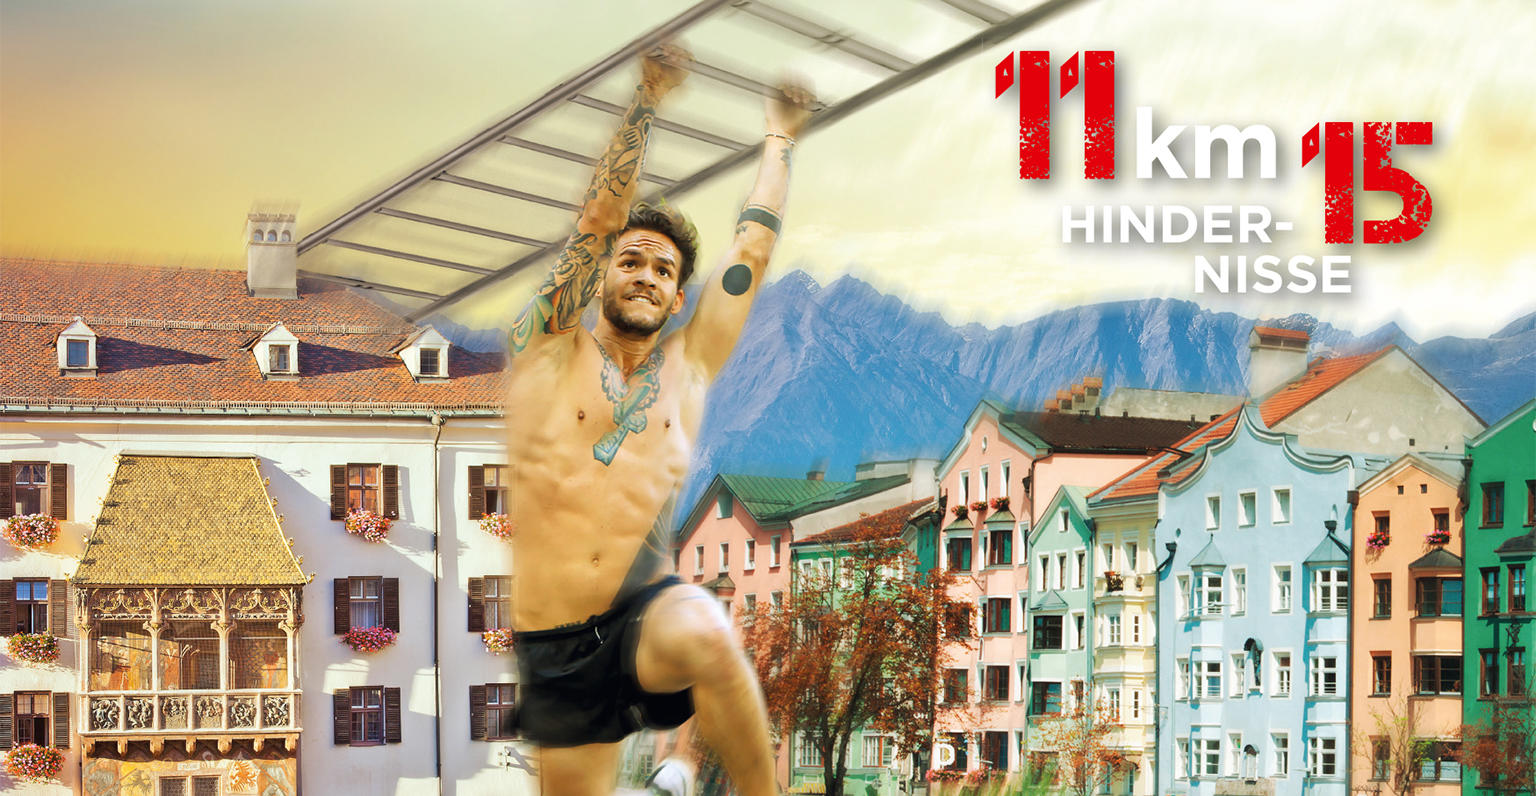 Innsbruckathlon 2019 - BEAT THE CITY